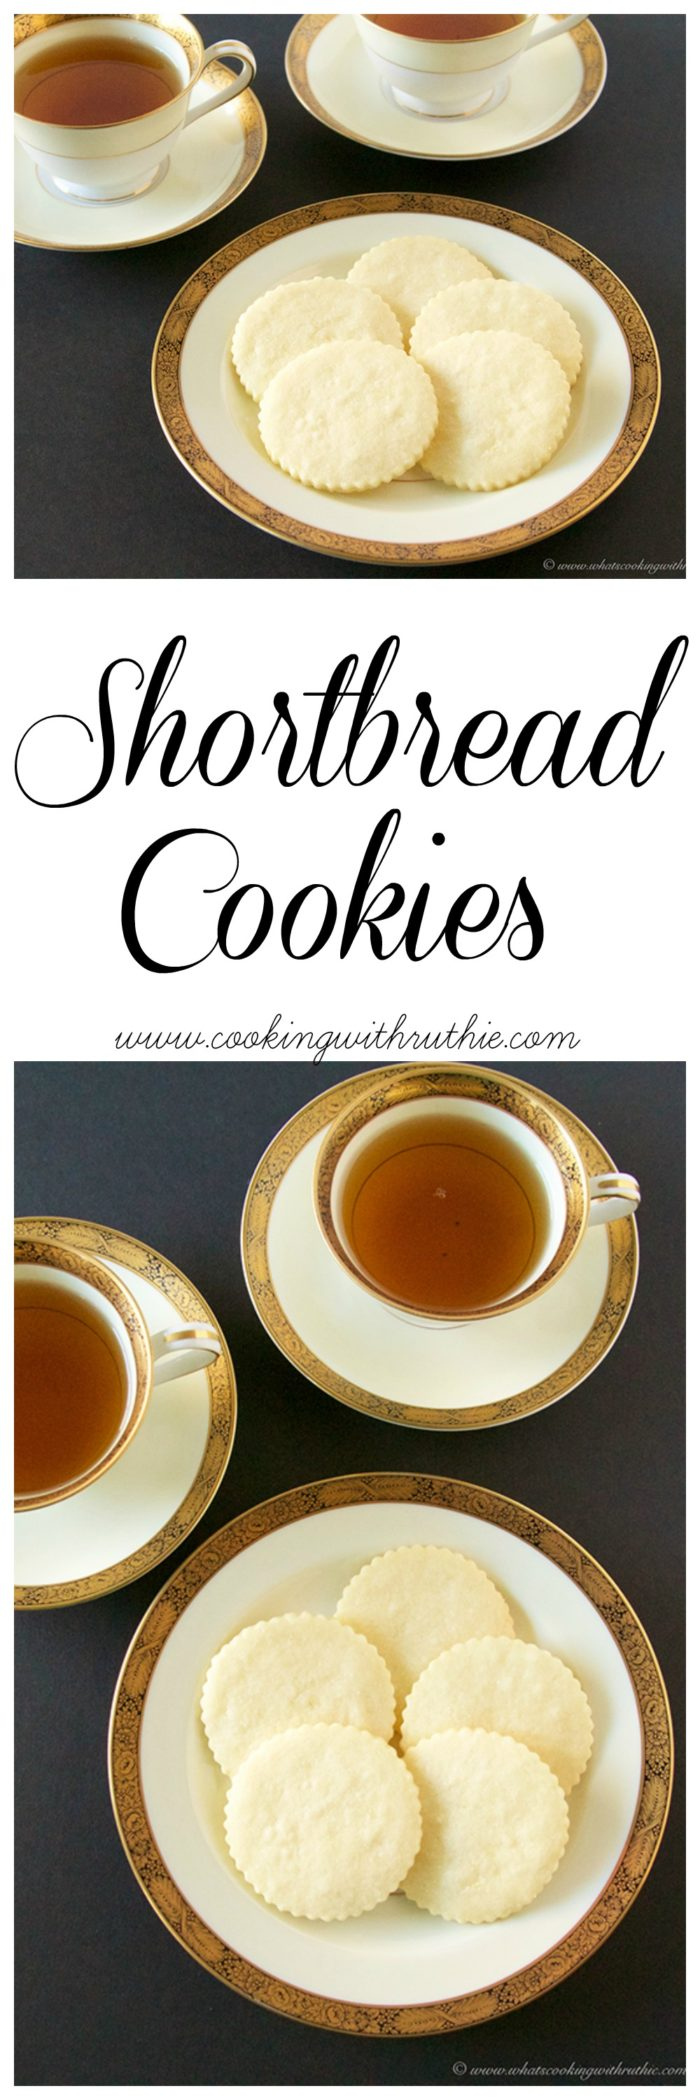 Shortbread Cookies on www.cookingwithruthie.com go beautifully with your morning coffee or tea!